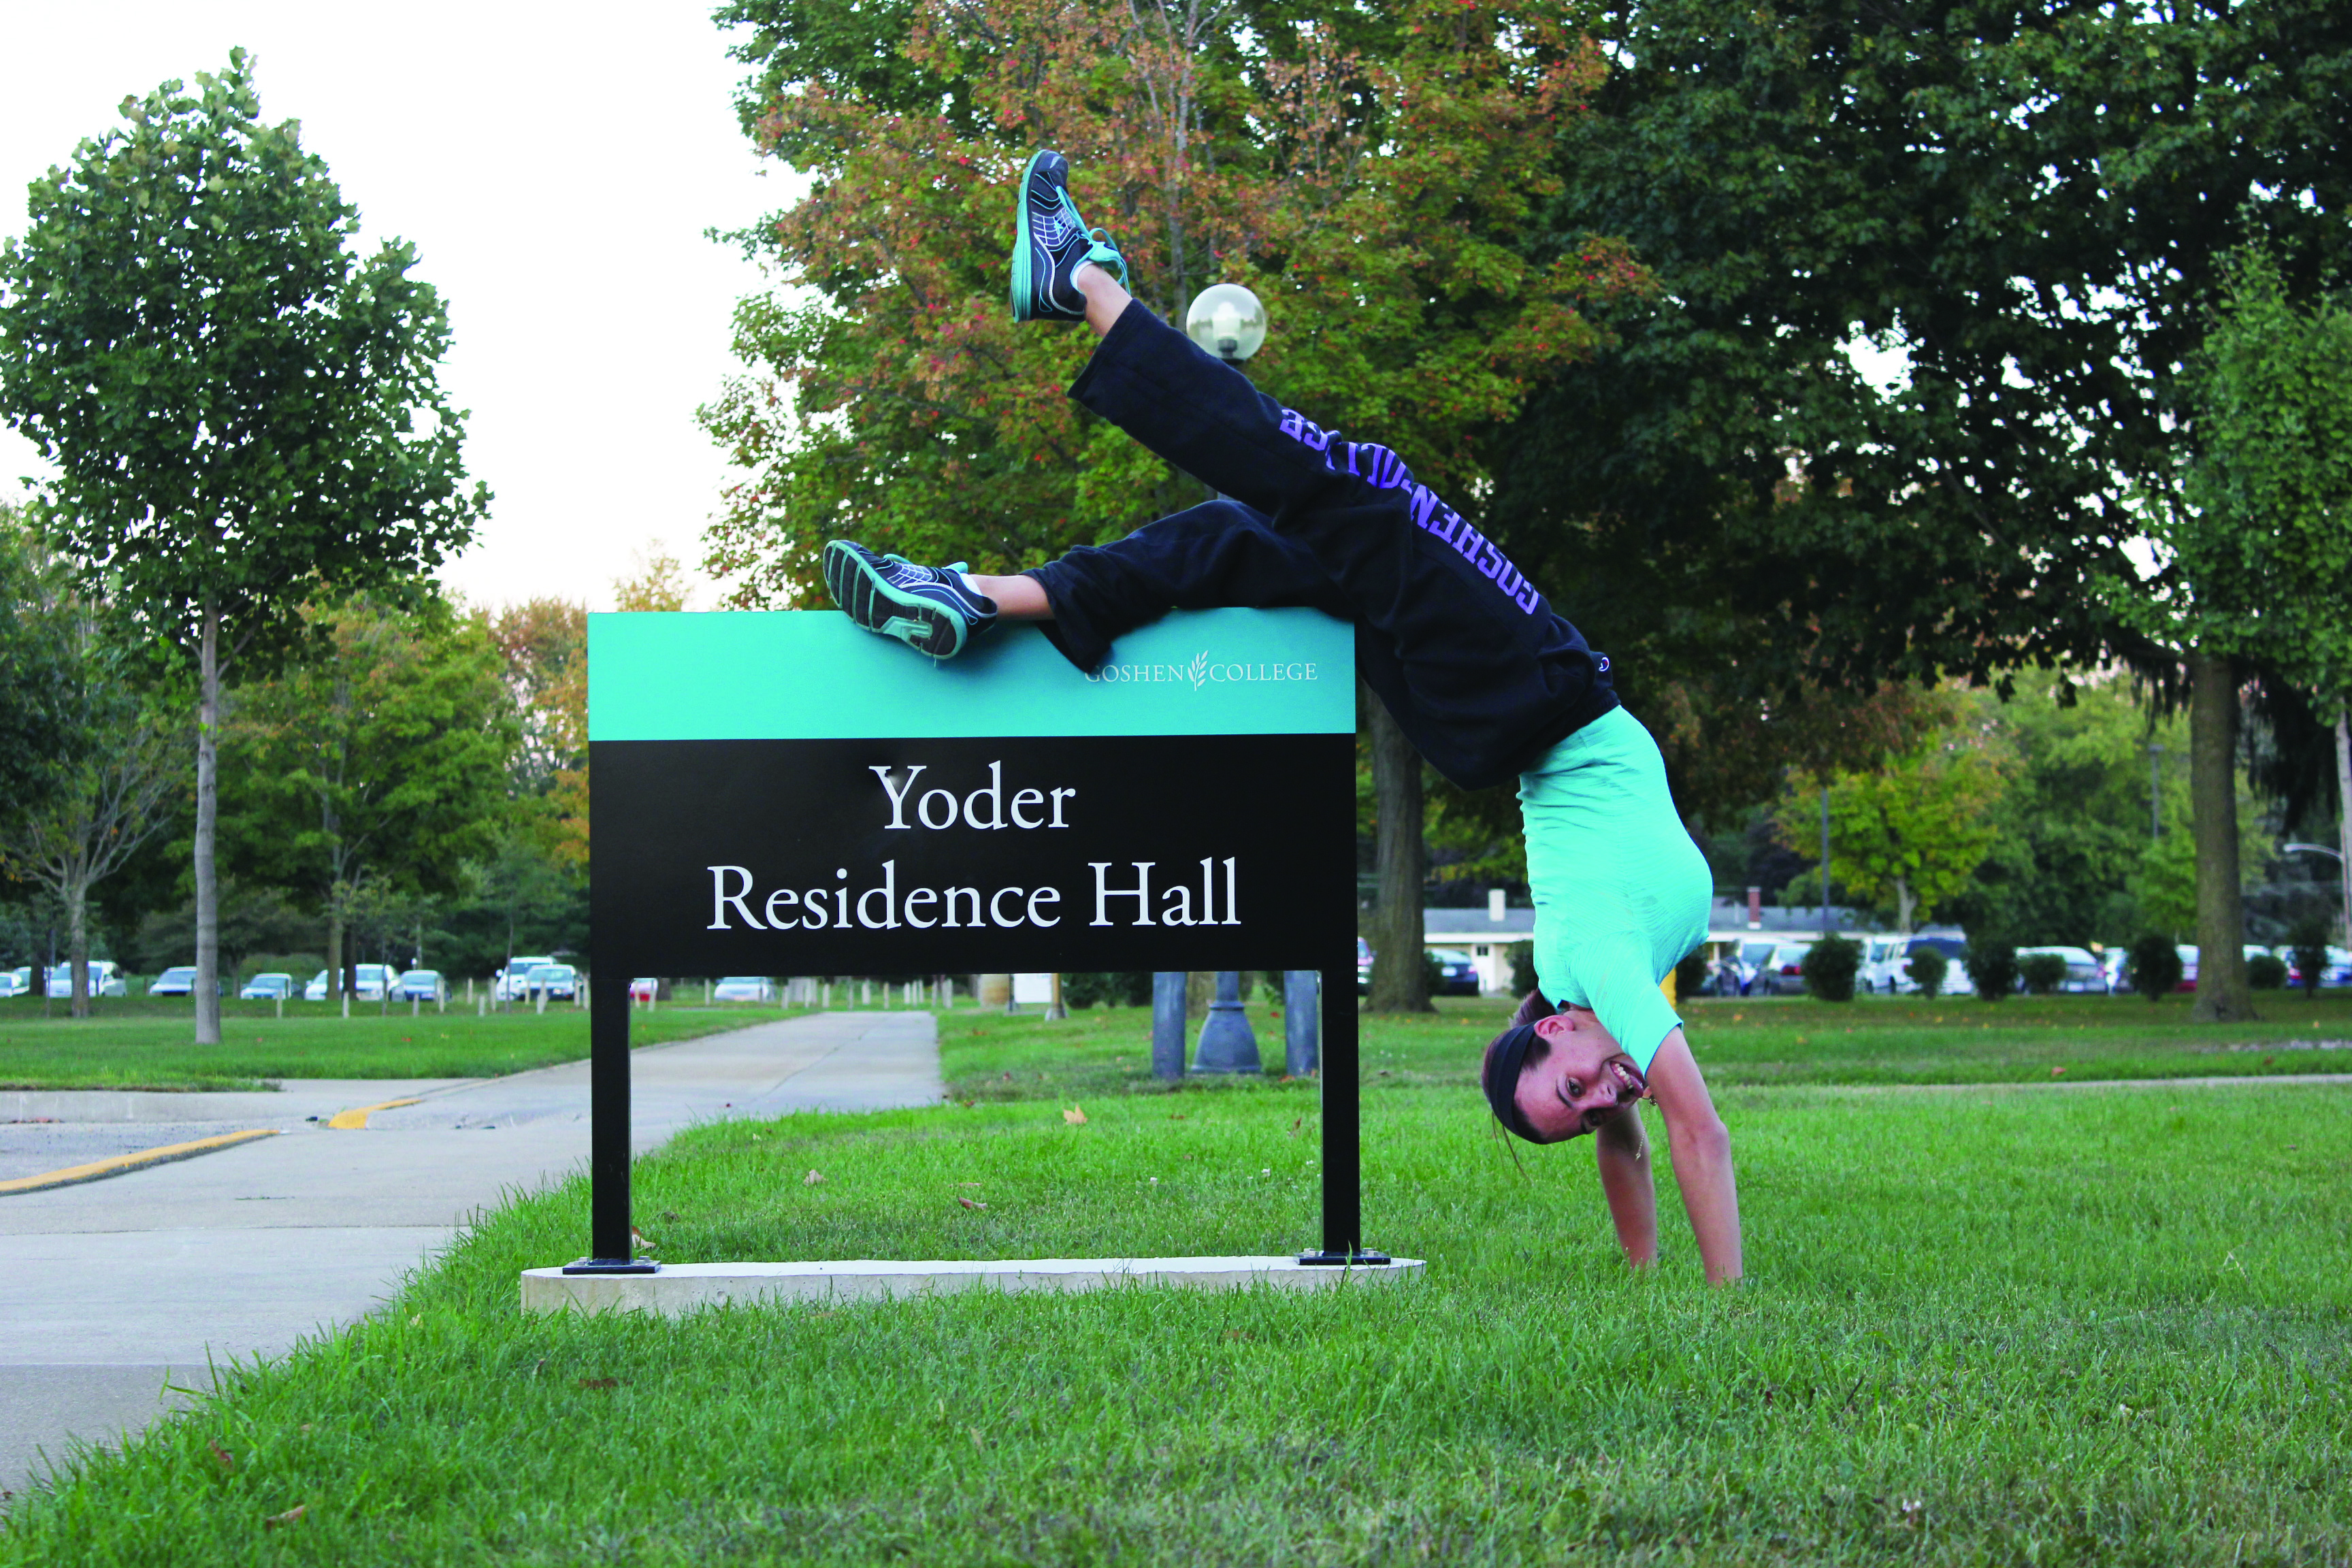 Morgan Owens wears a green shirt and does a handstand next to the matching green Yoder Residence Hall sign